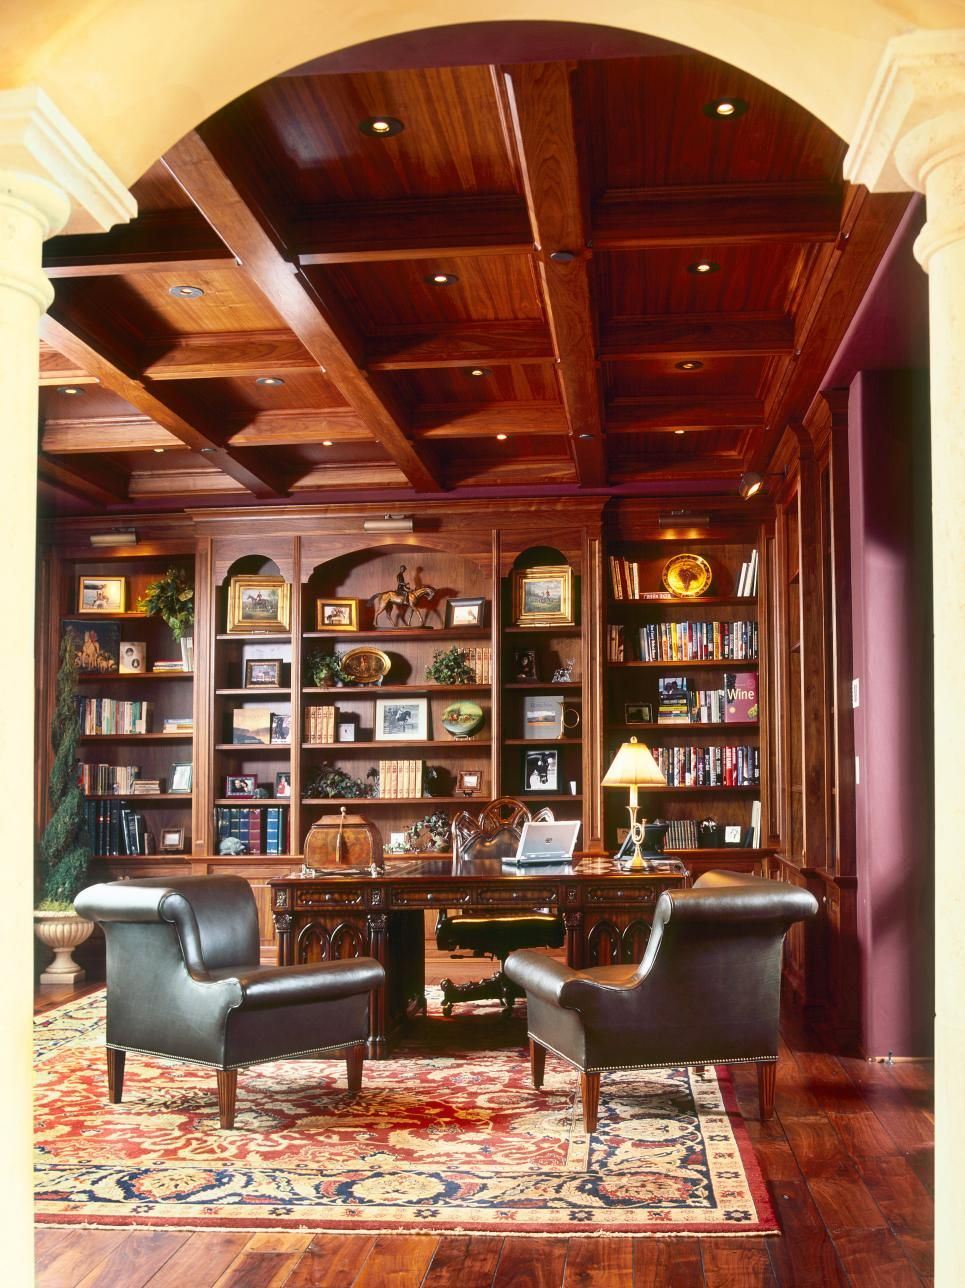 The high coffered ceiling and arched entryway bring sophistication